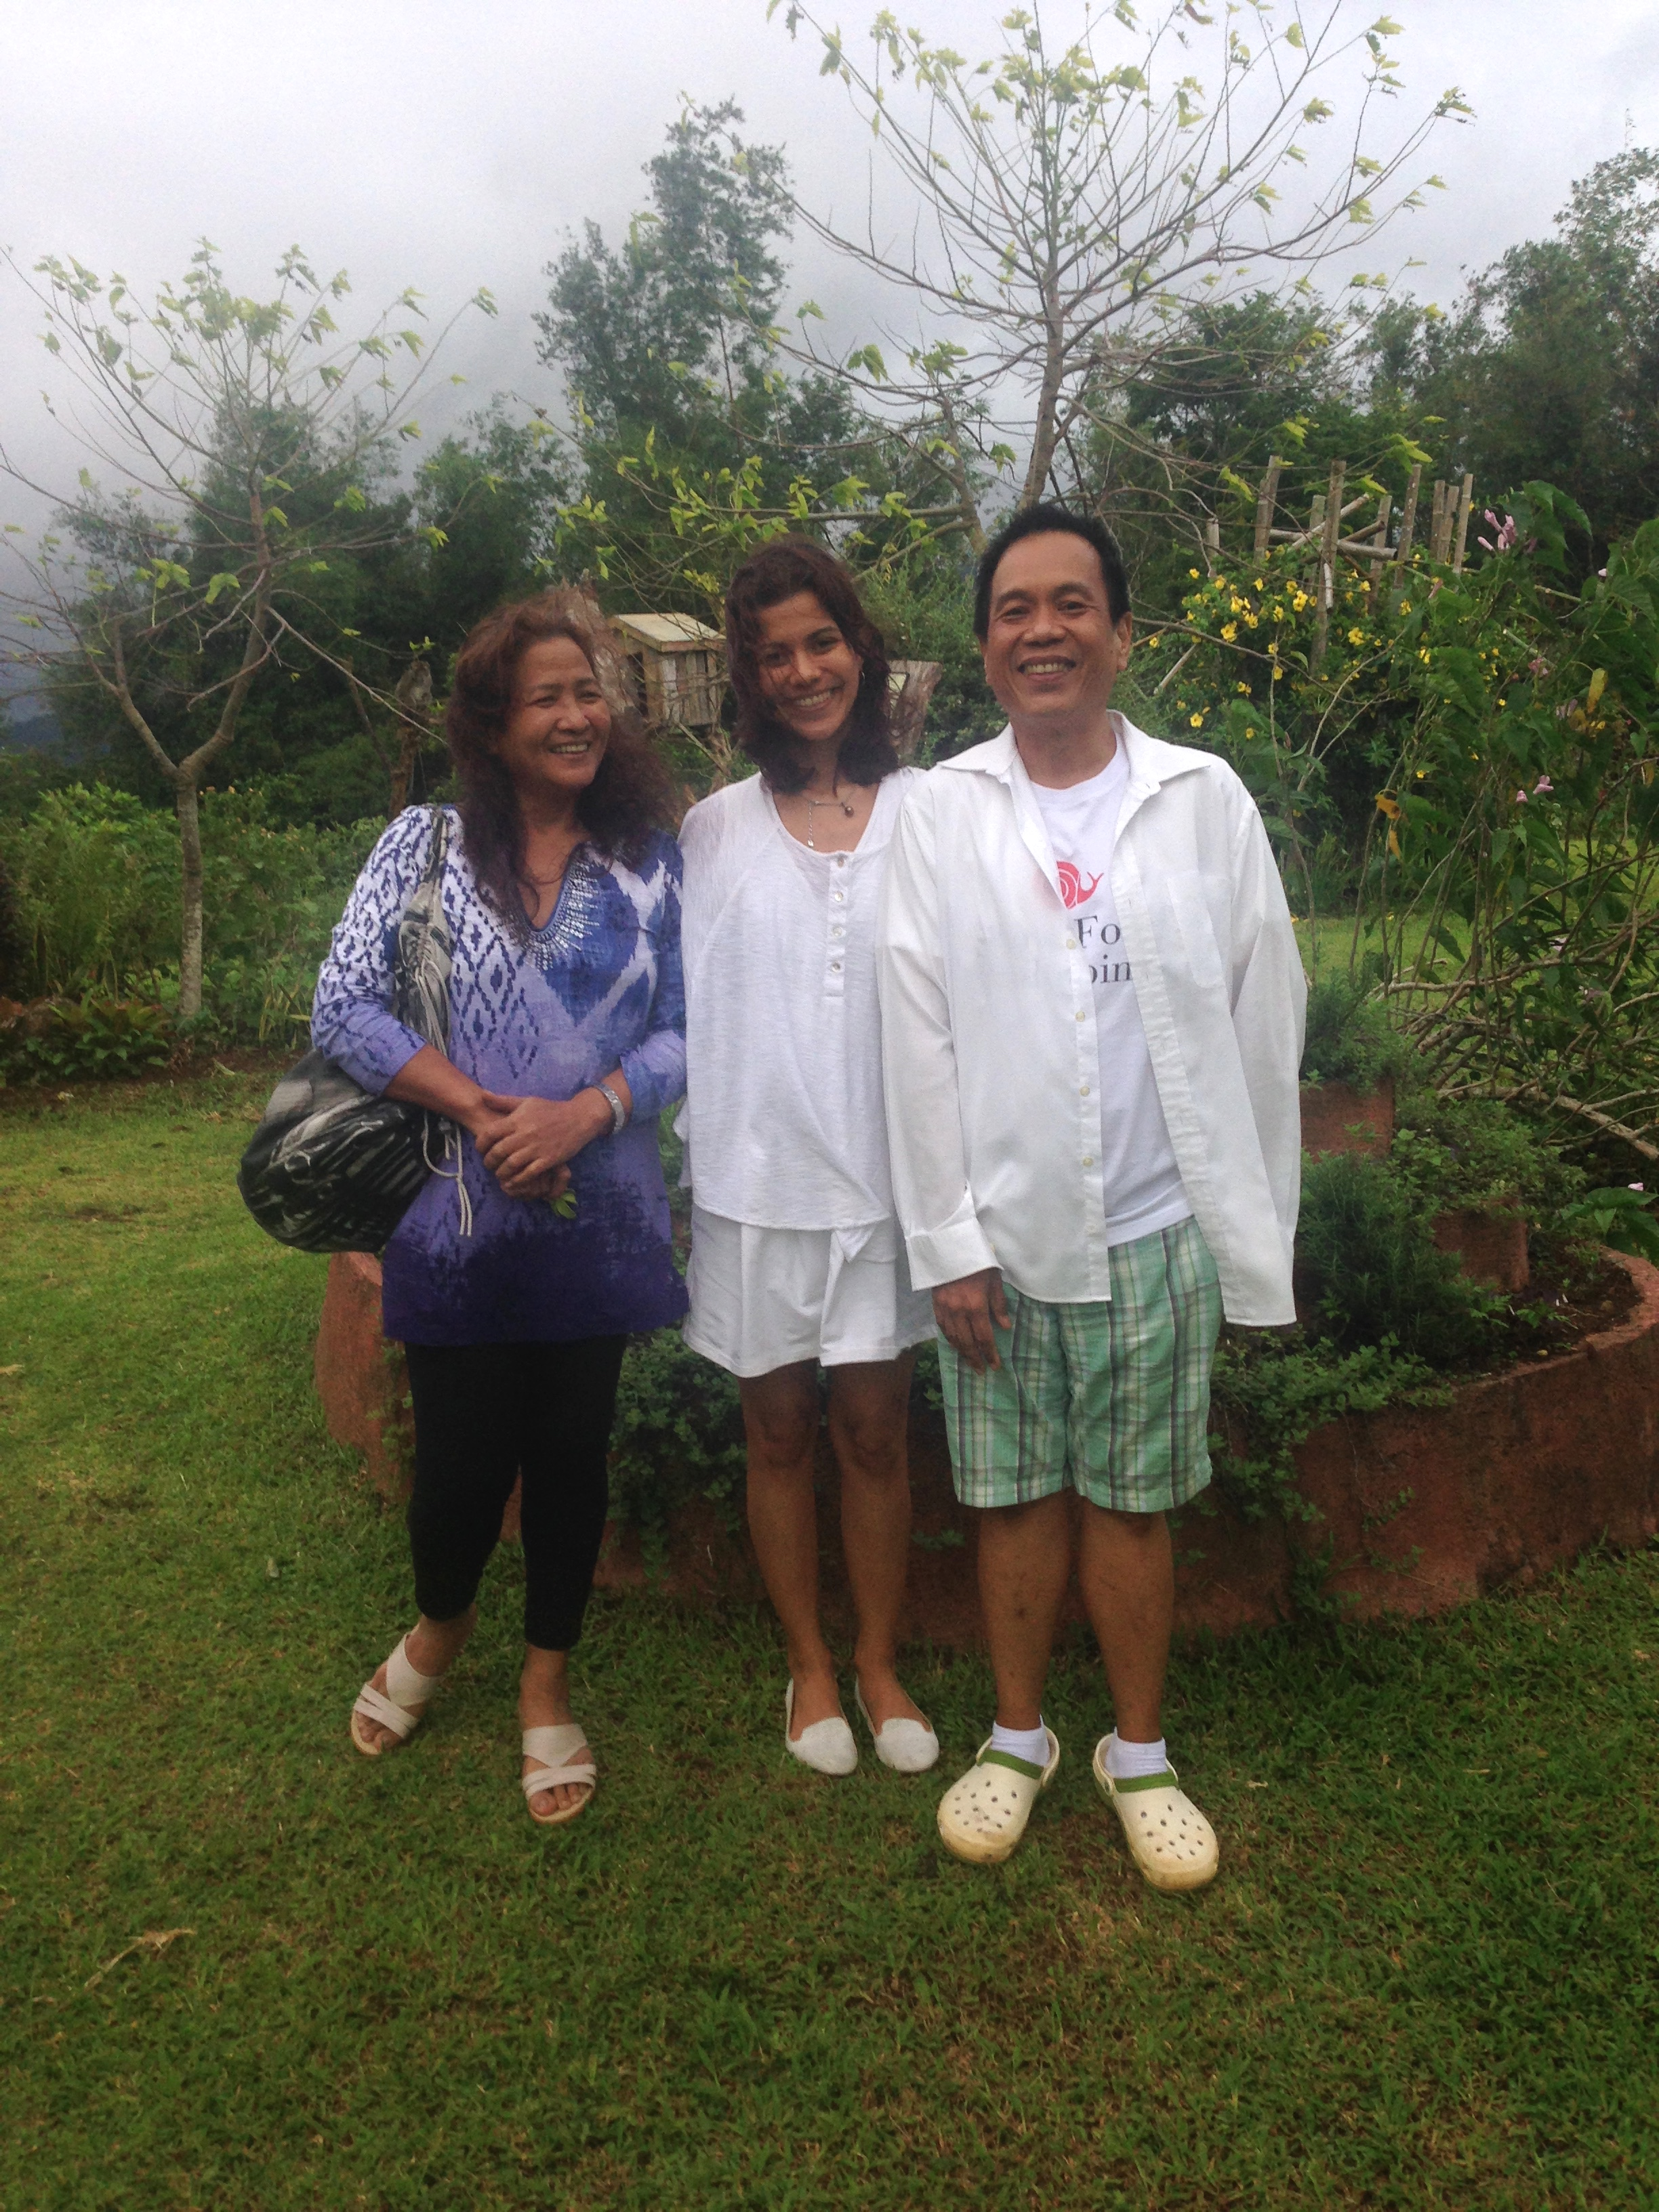 Dr, Ho my mom and yours trully